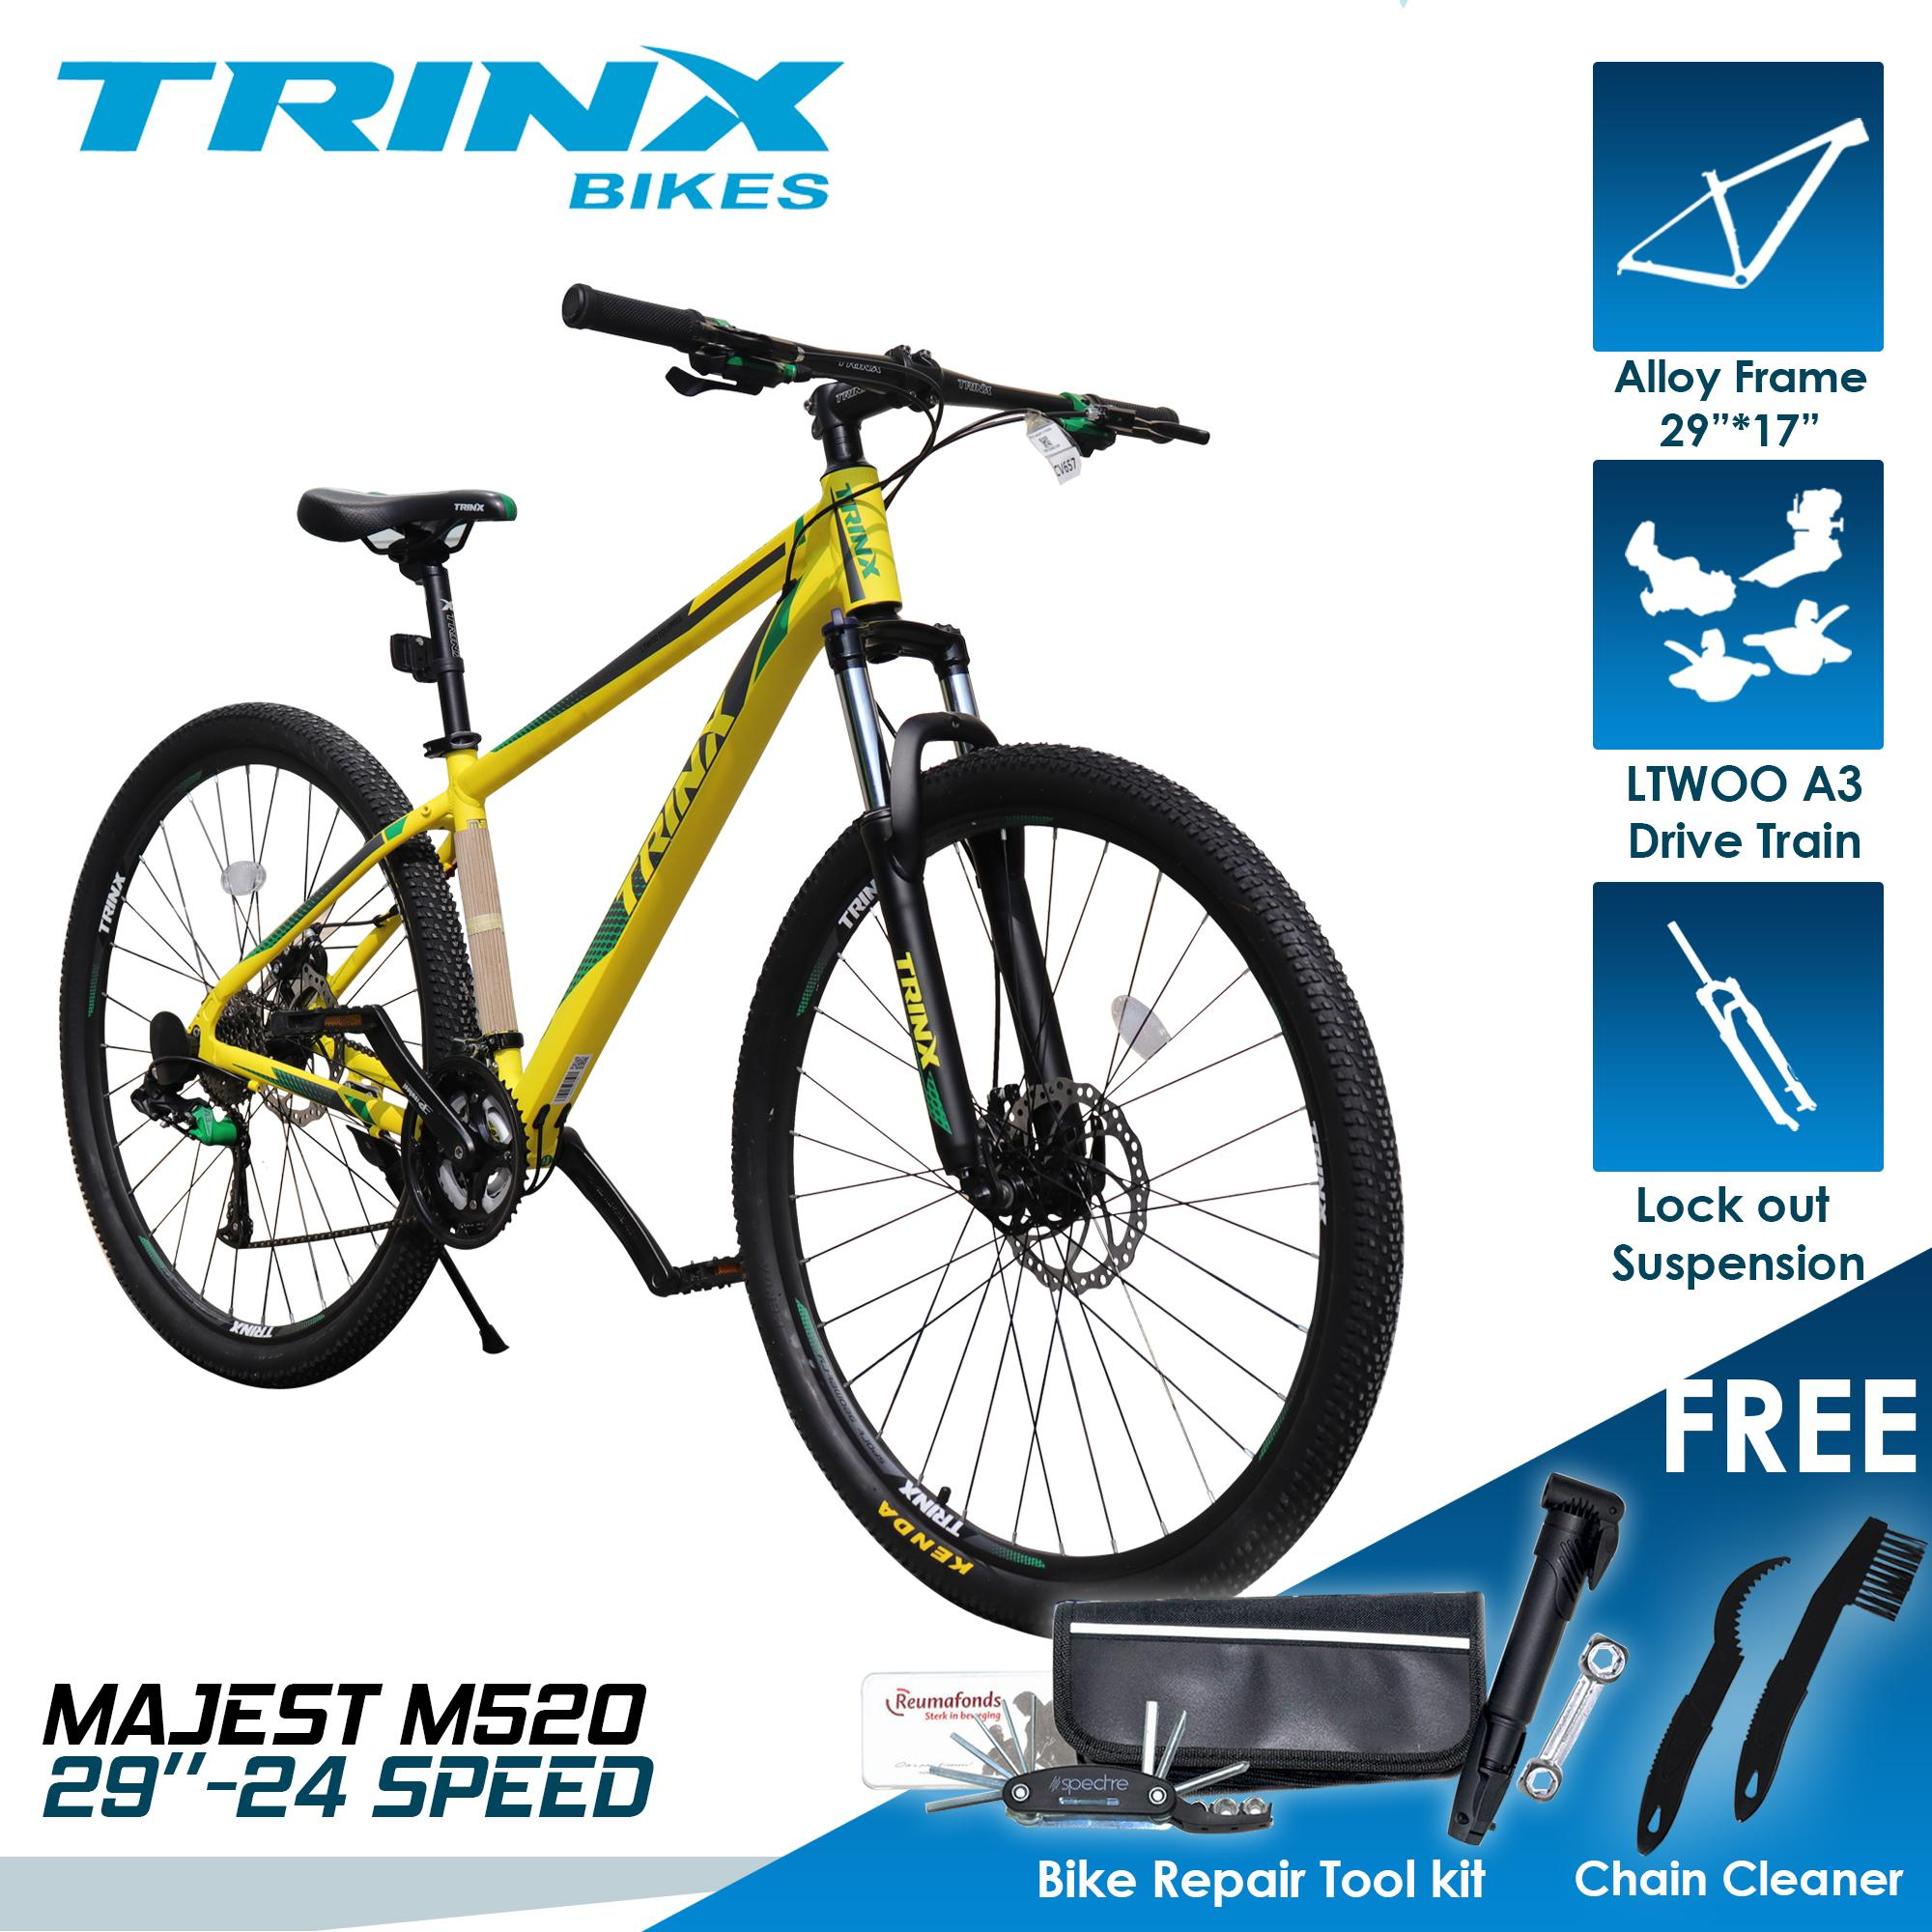 TRINX M520 29er- 24 SPEED LTWOO GROUPSET MOUNTAIN BIKE with FREE - BIKE  TIRE REPAIR KIT and 2 in 1 CHAIN CLEANER